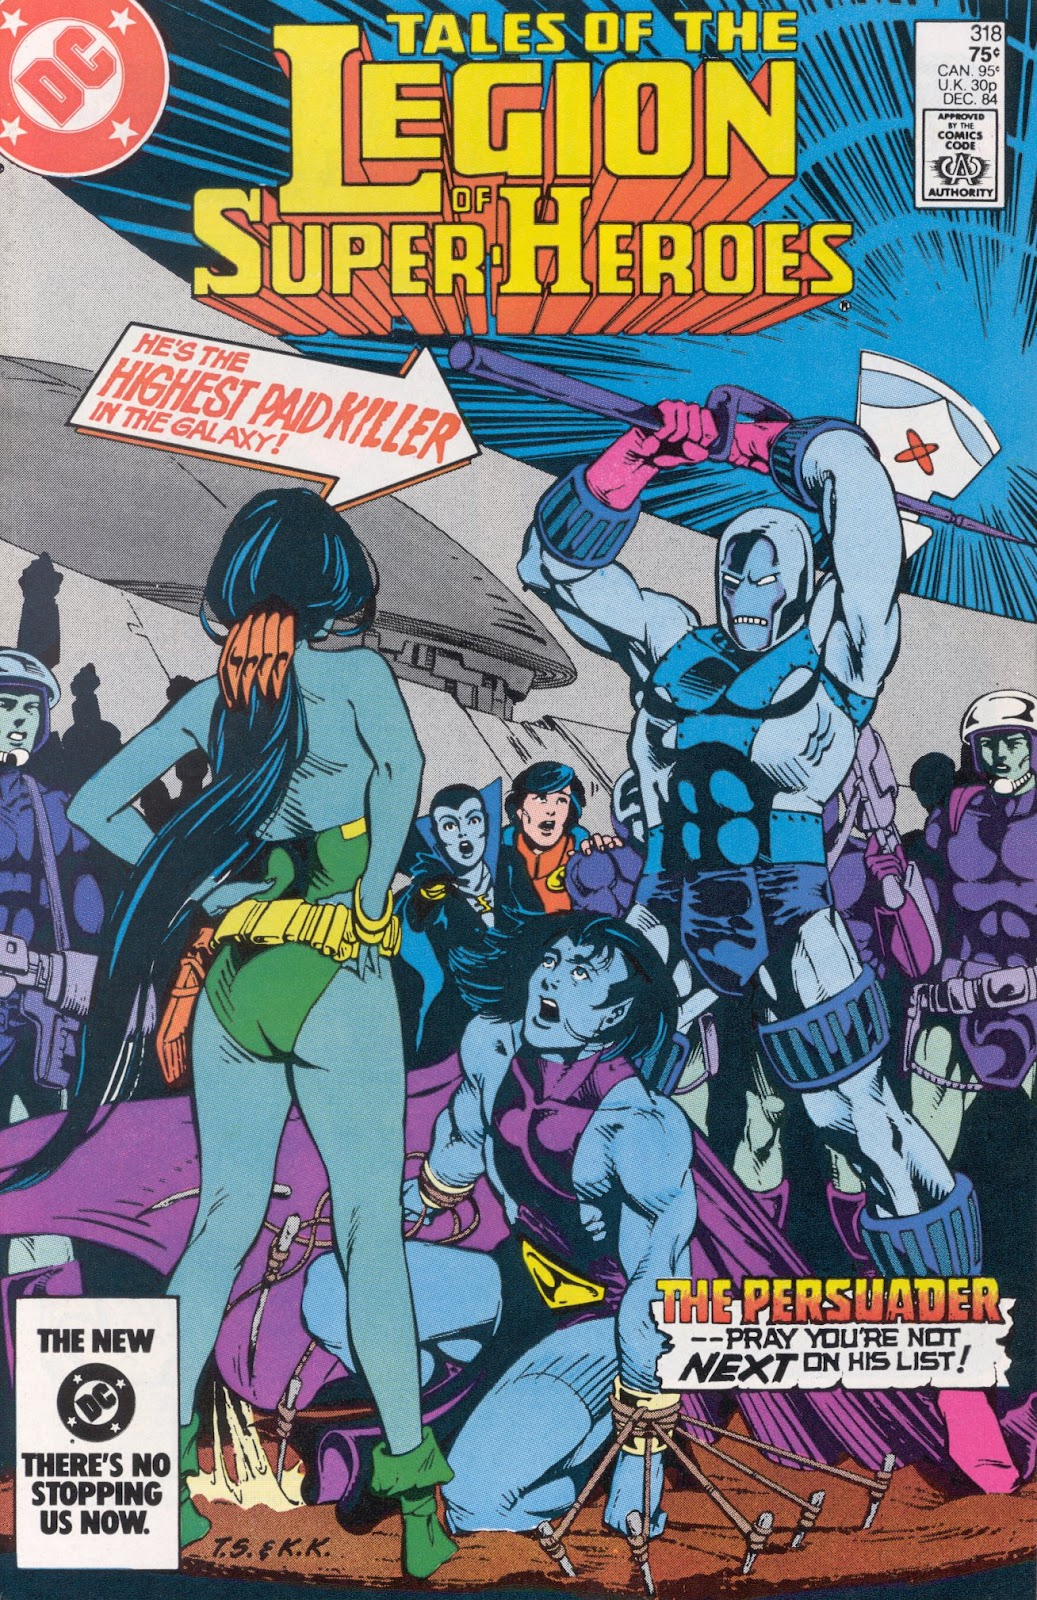 Tales of the Legion Issue #318 #5 - English 1